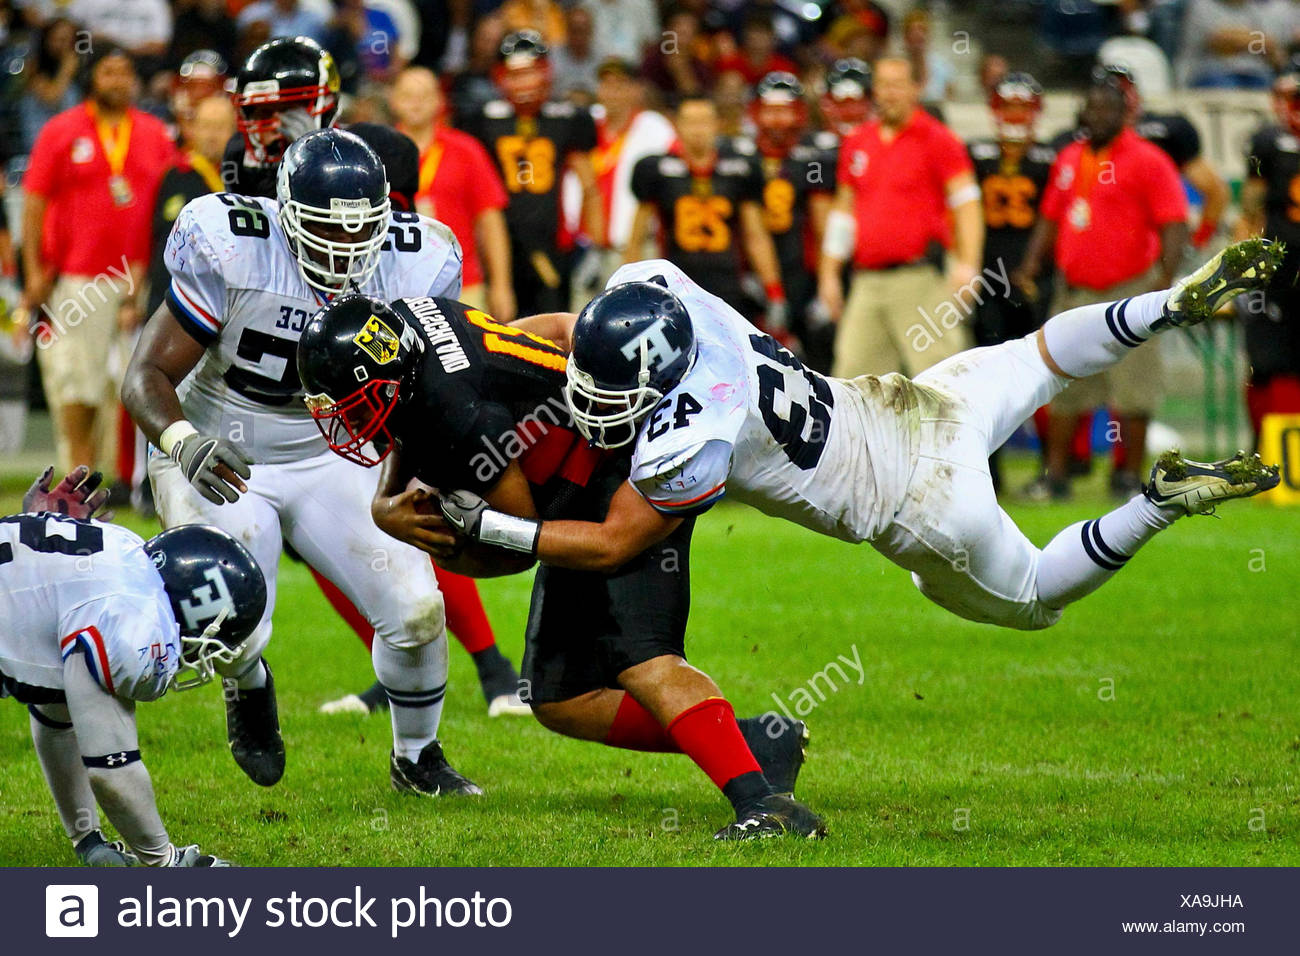 American Football, European Championship 2010, Germany vs. France in the Grand Final in the Commerzbank Arena, Frankfurt, Hesse - Stock Image